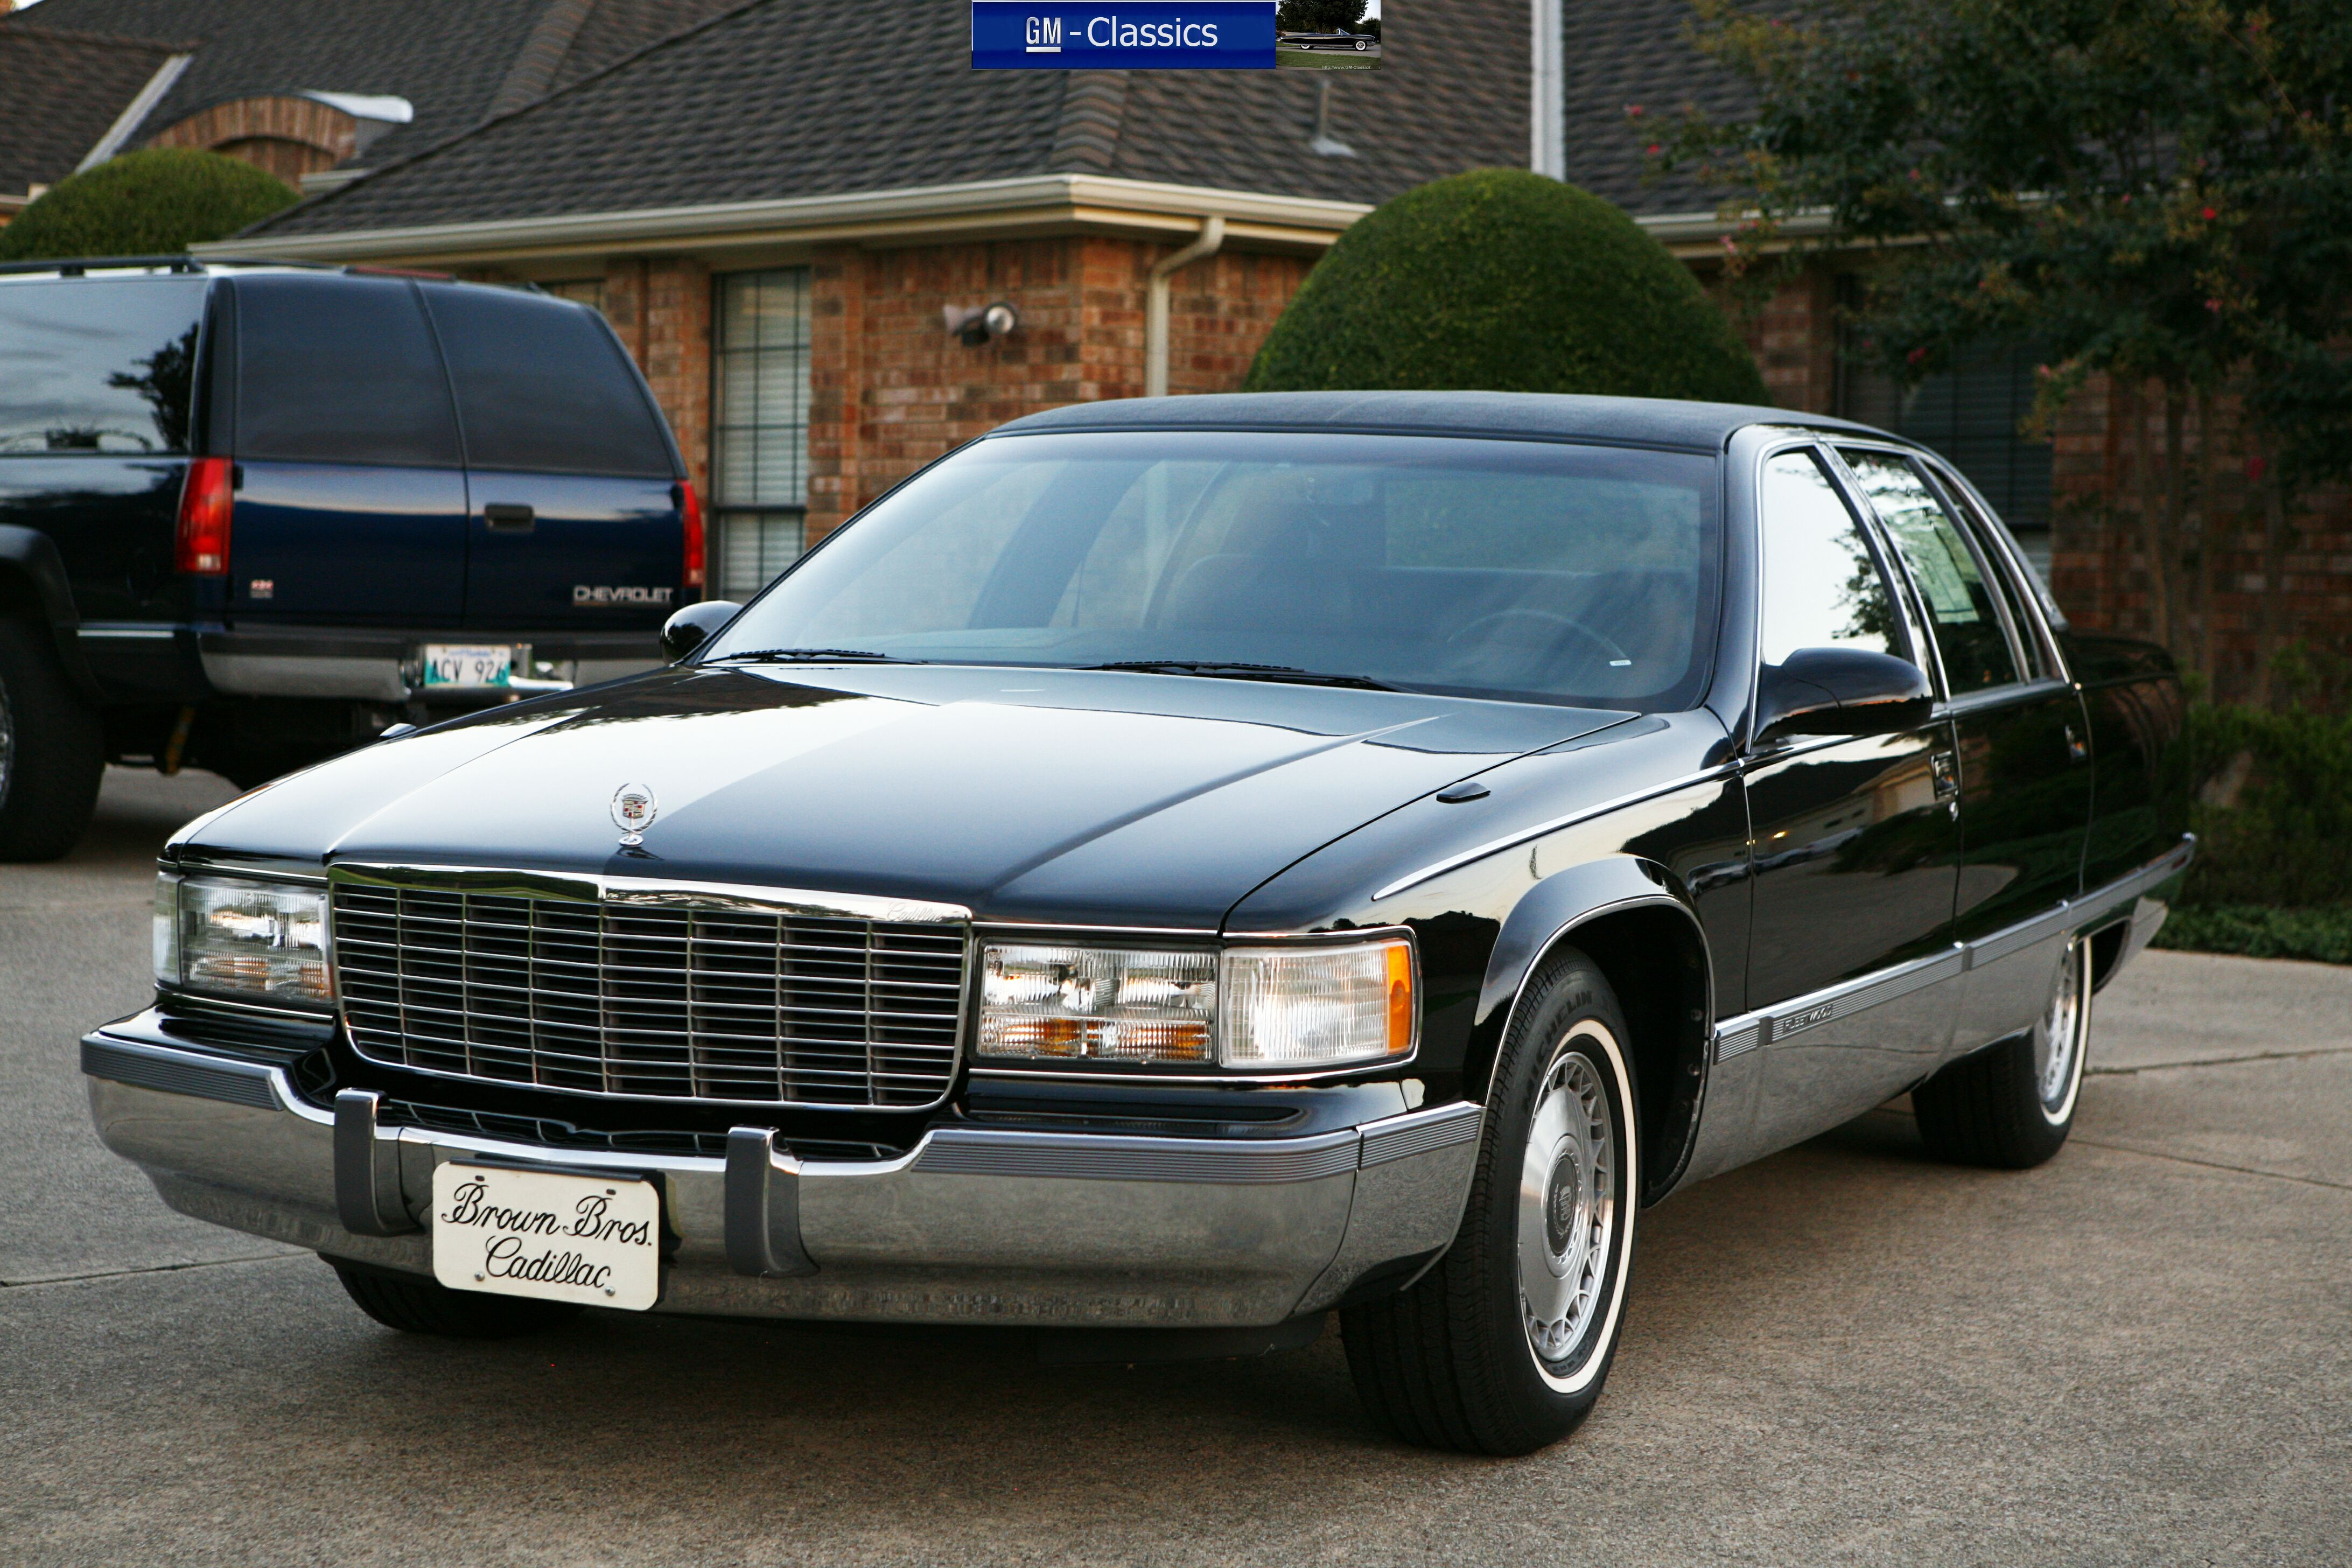 besides Cadillac Fleetwood Limousine Limousines For Sale likewise Brhm in addition Cadillac Deville American Cars For Sale X further Large. on 1996 cadillac deville